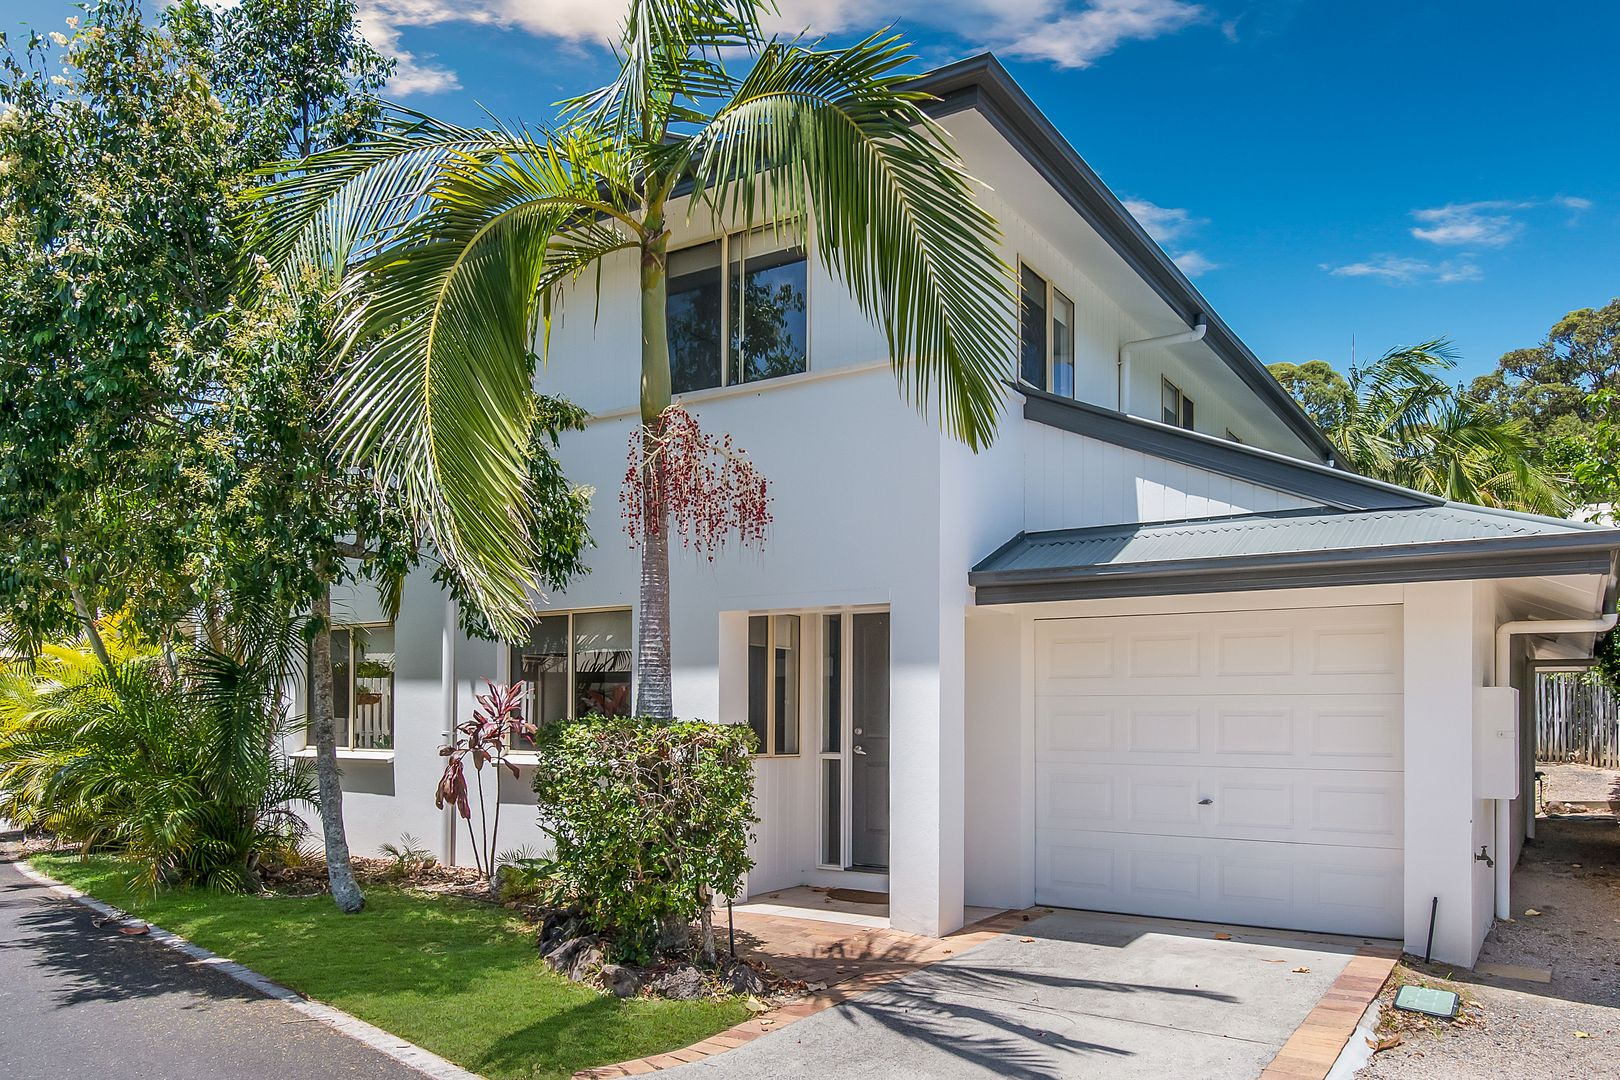 22/5-7 Old Bangalow Road, Byron Bay NSW 2481, Image 0